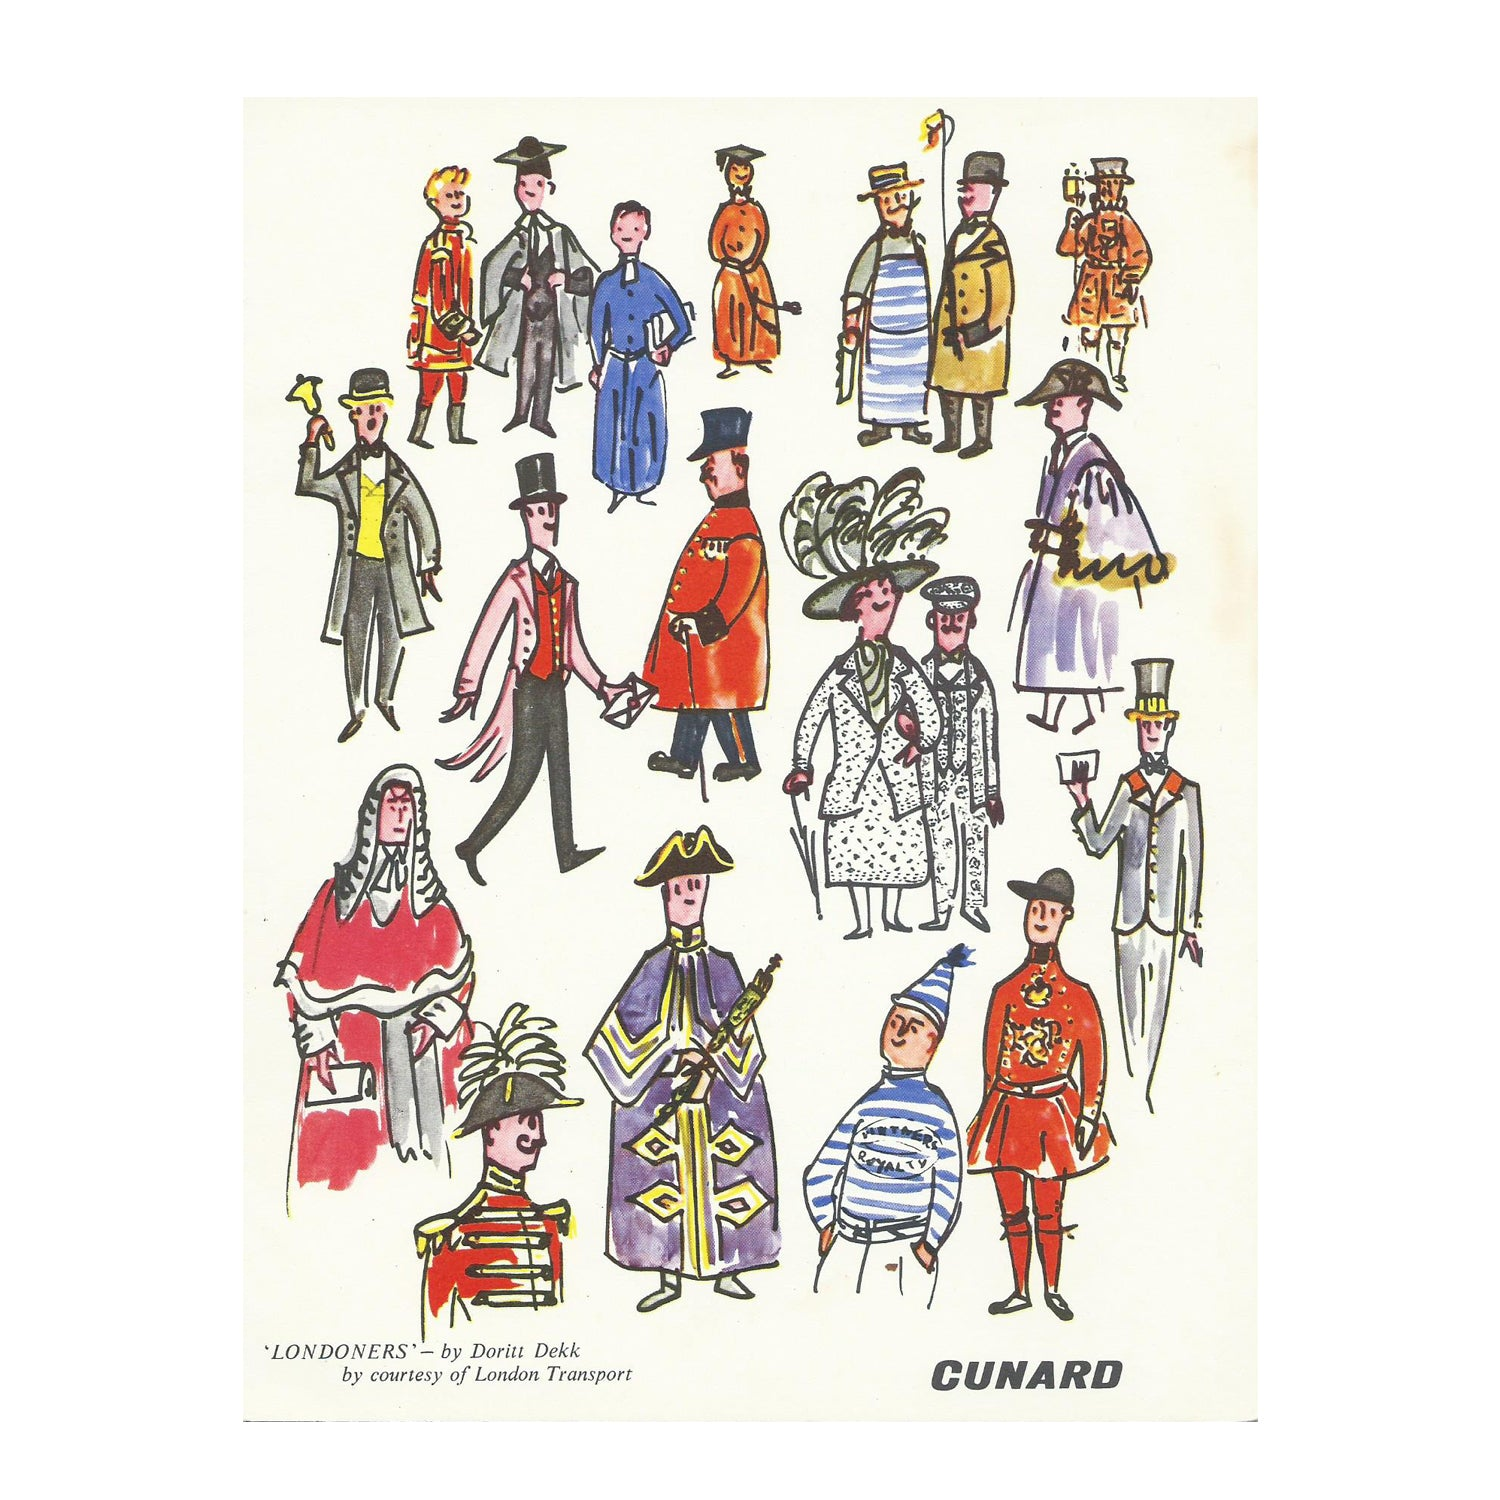 Cunard Dinner Menu, 'Queen Mary' by Dorrit Dekk